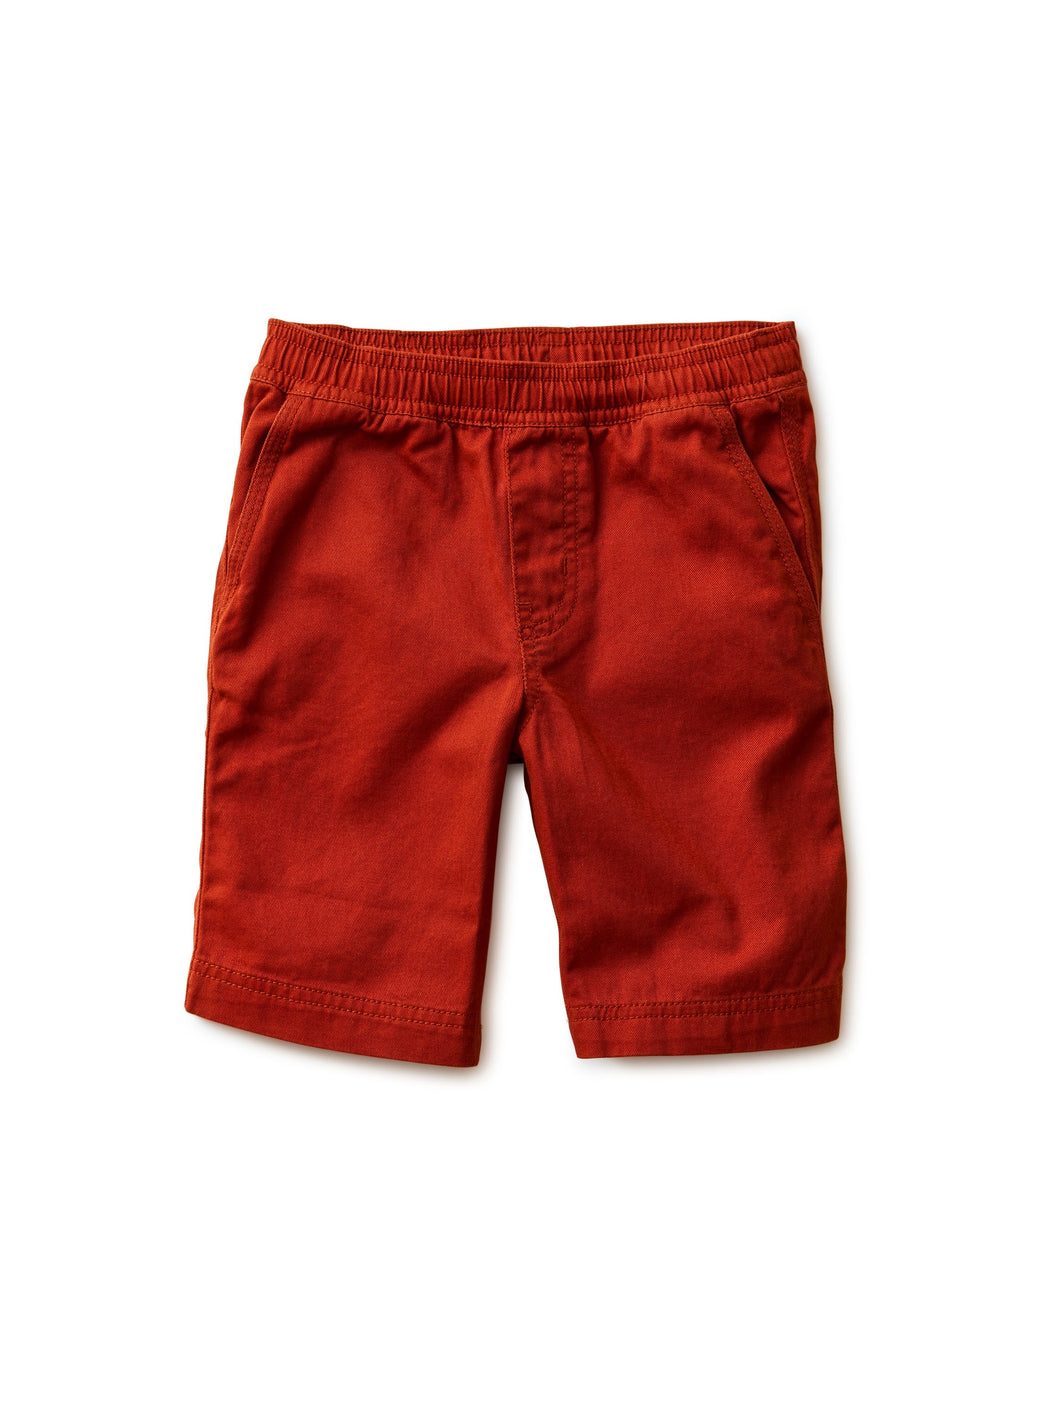 Easy Does It Twill Short-Dark Maple